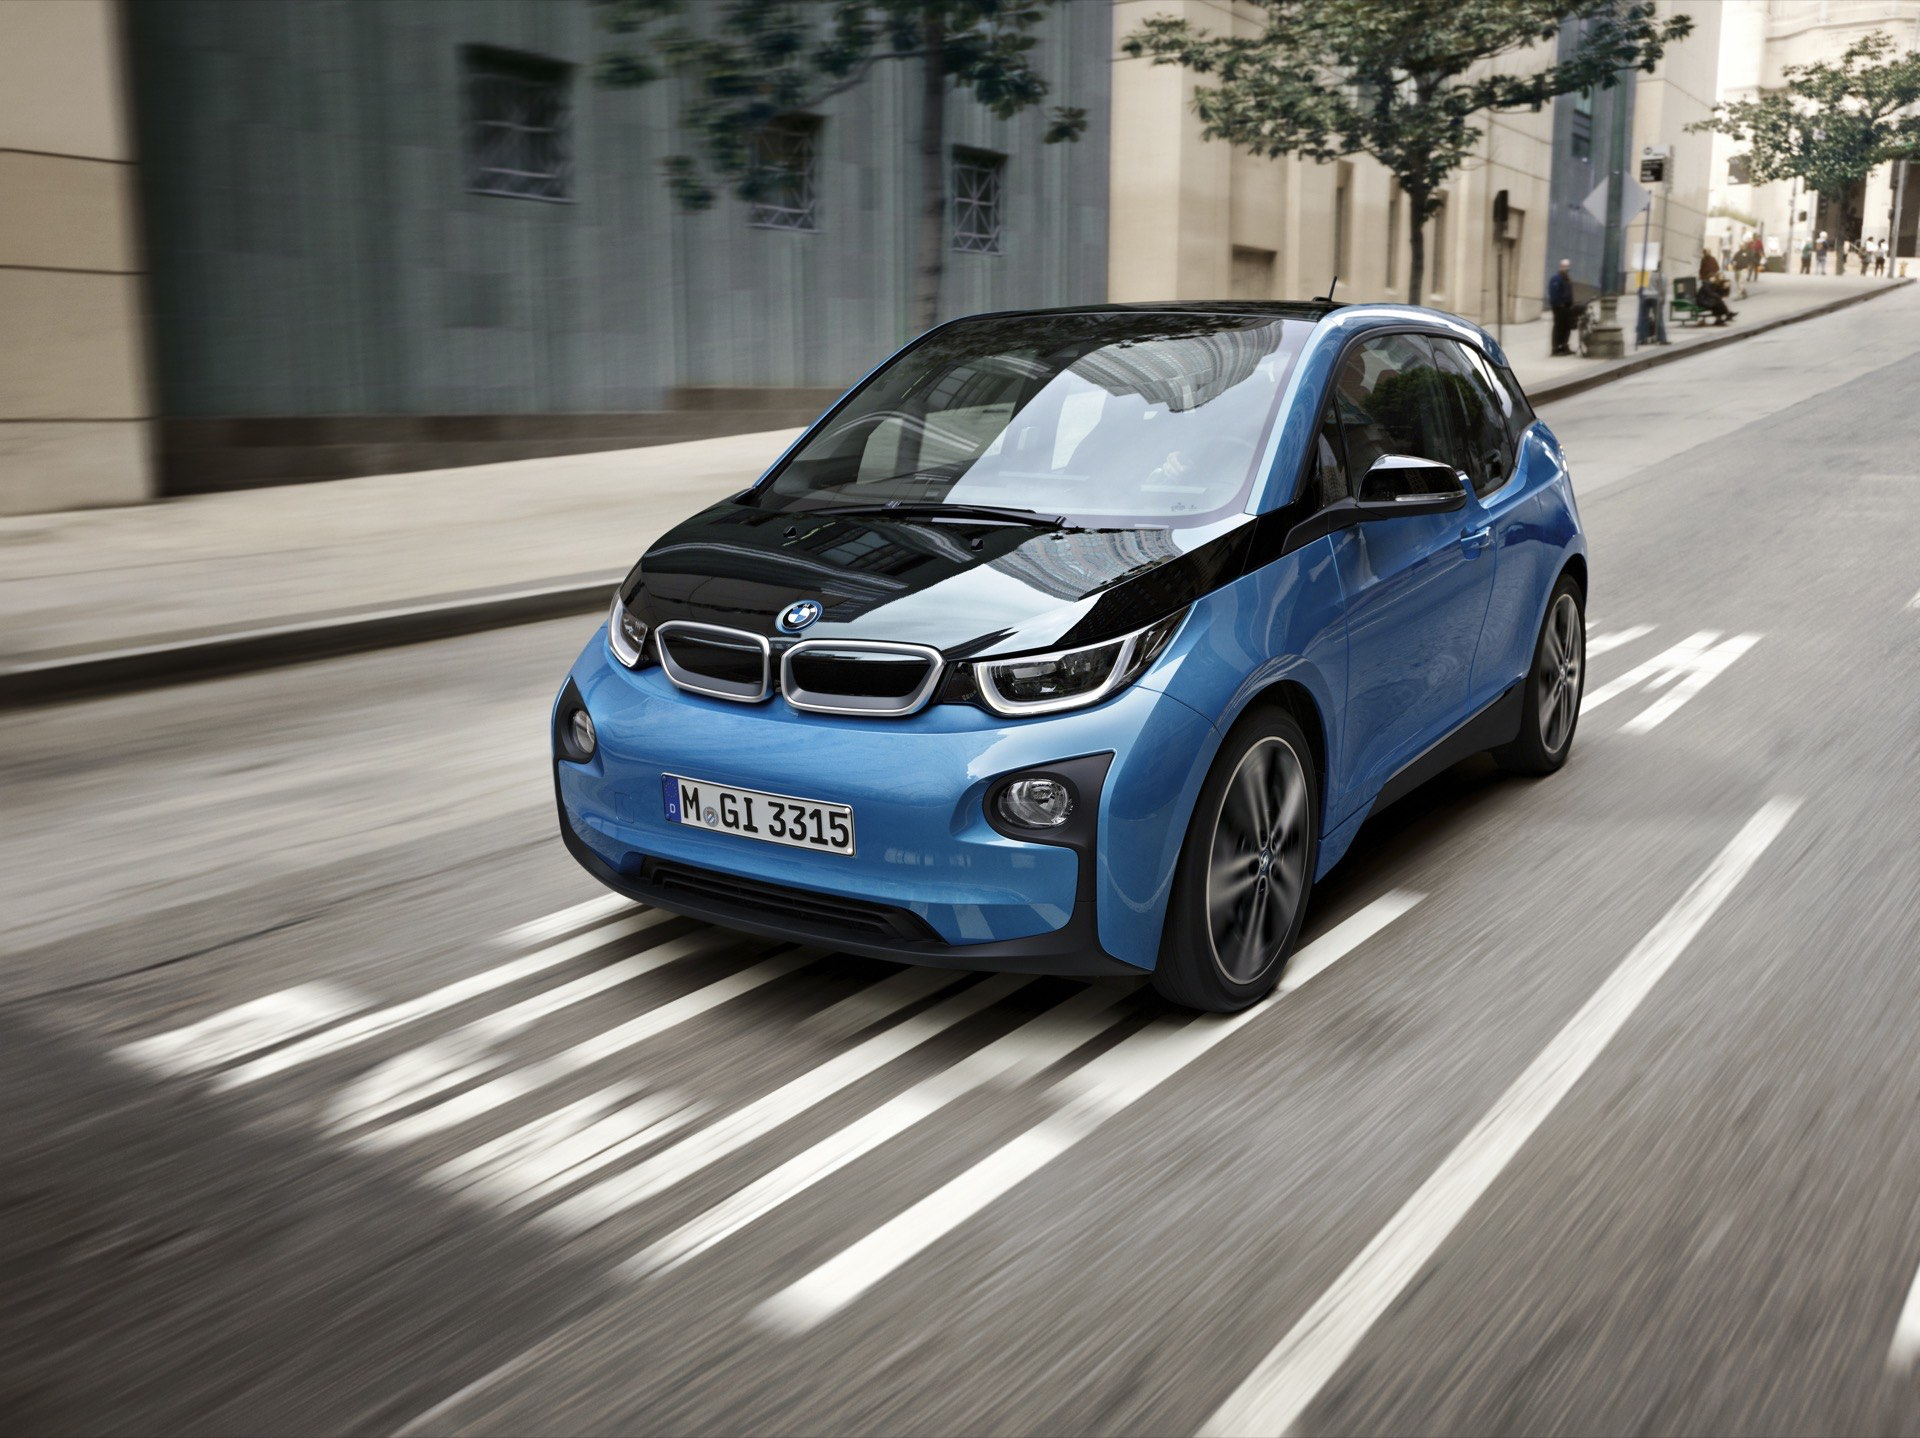 BMW i3 Update New Color Protonic Blue Metallic